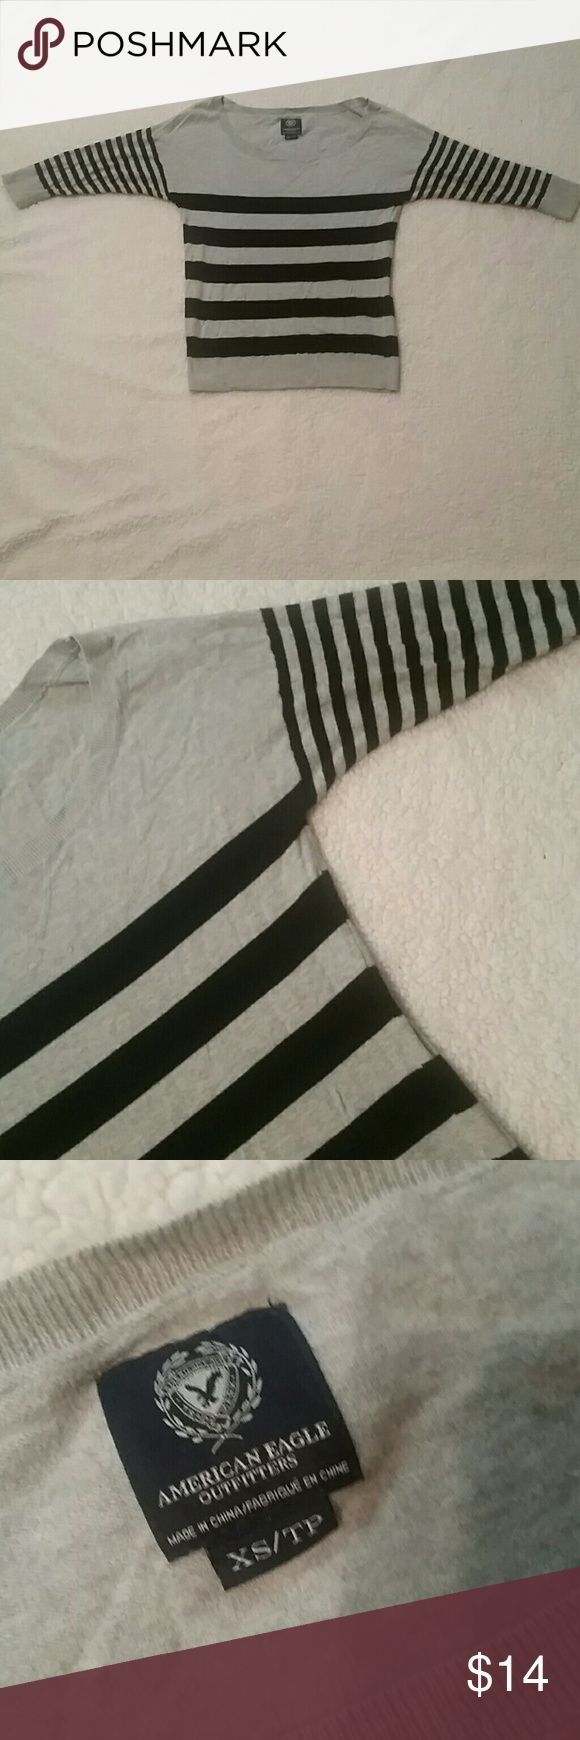 3/4 sleeve American Eagle shirt Gray and black striped American Eagle shirt. 3/4 length sleeves. XS but fits like a small. American Eagle Outfitters Tops